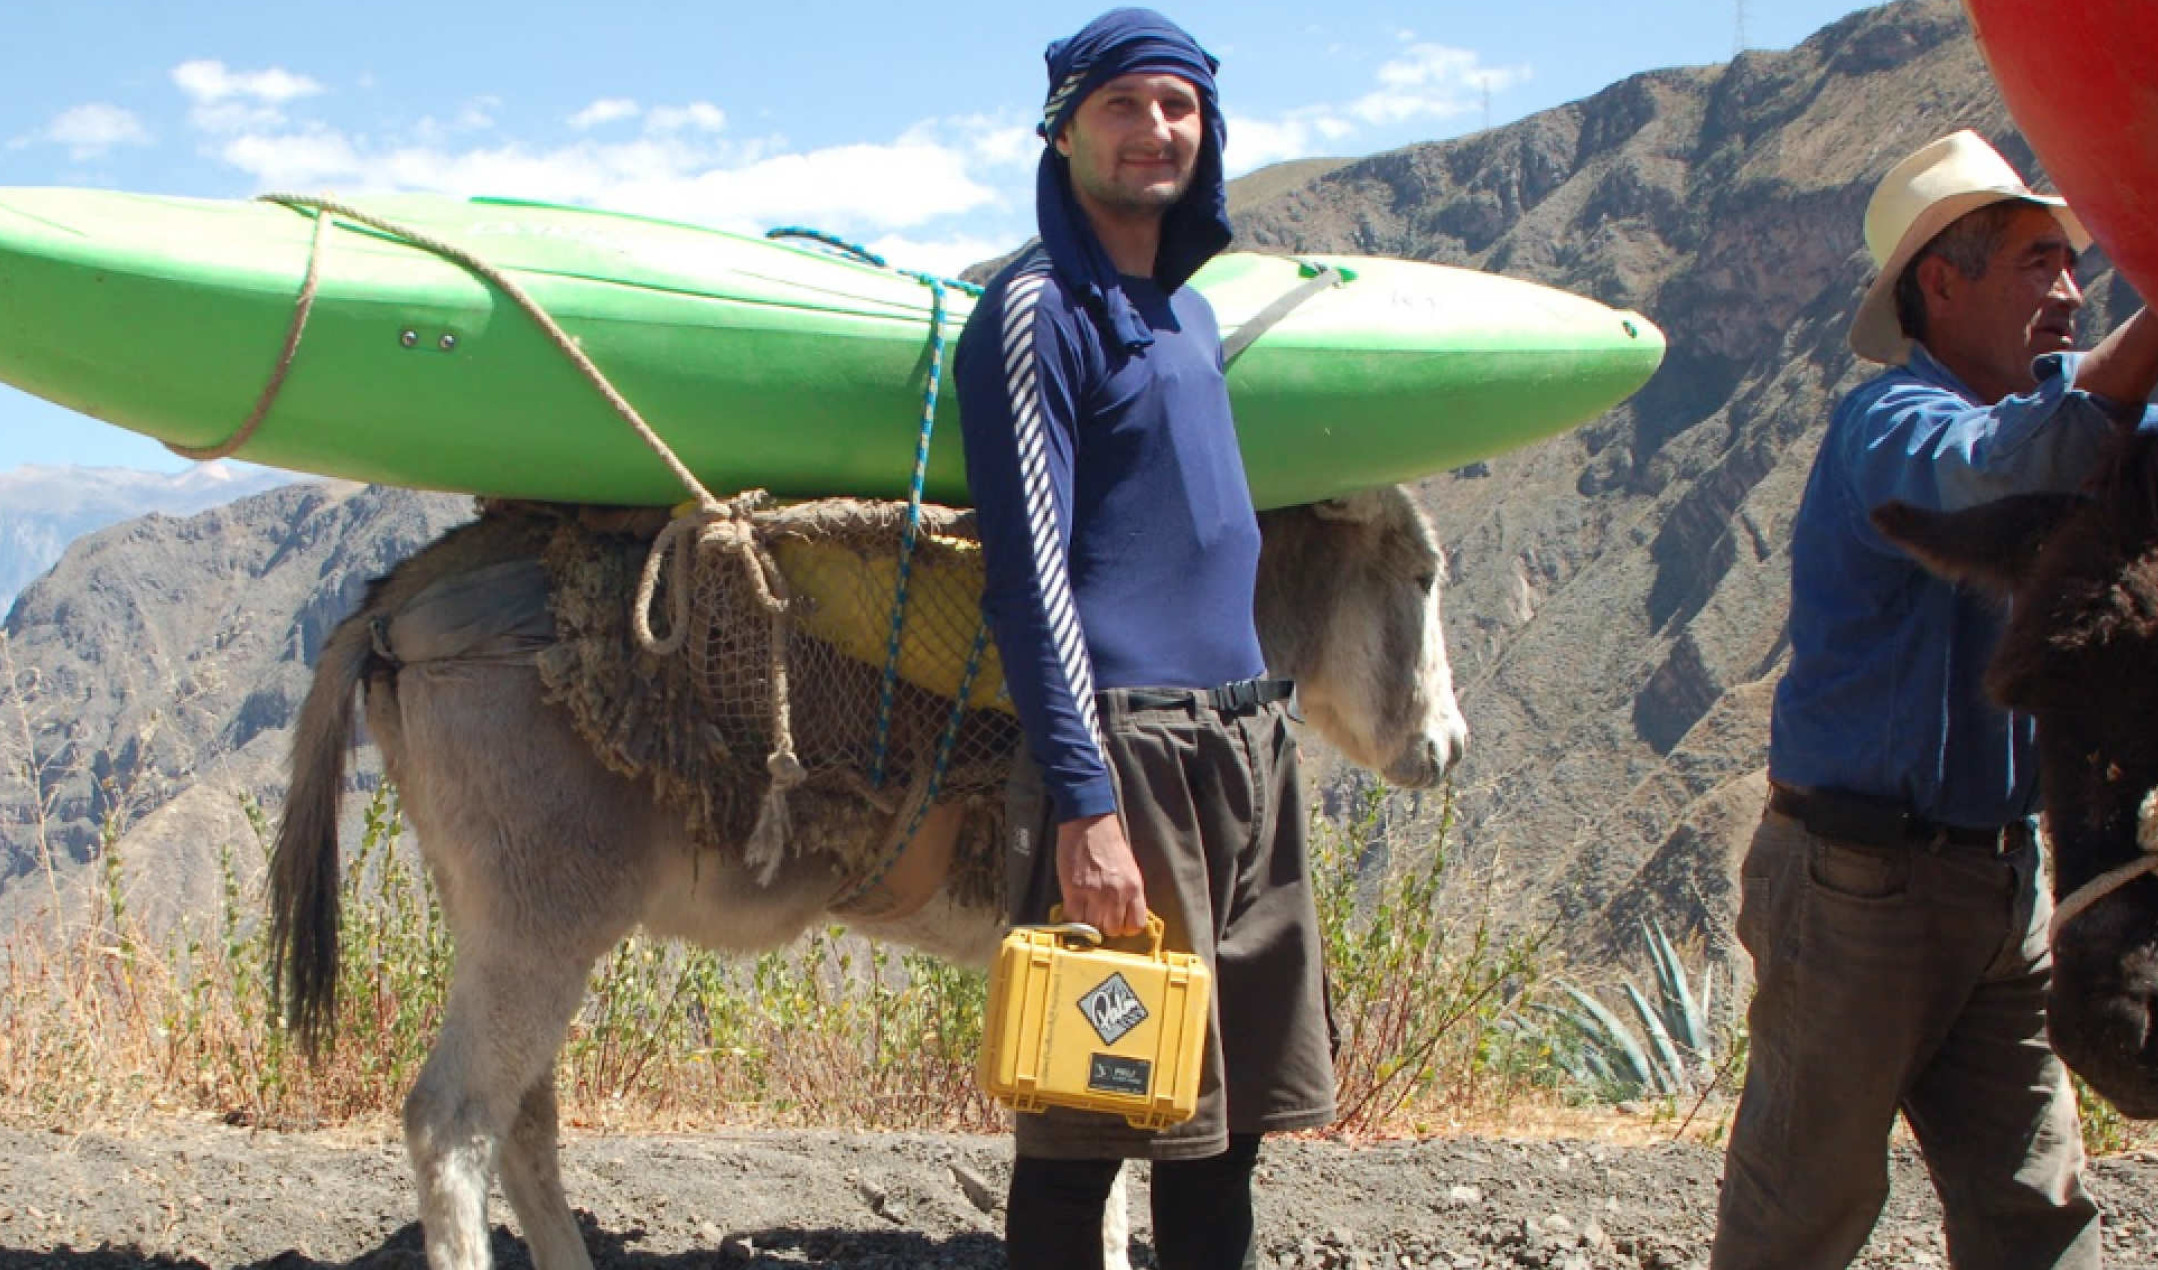 student with kayak on mule in background